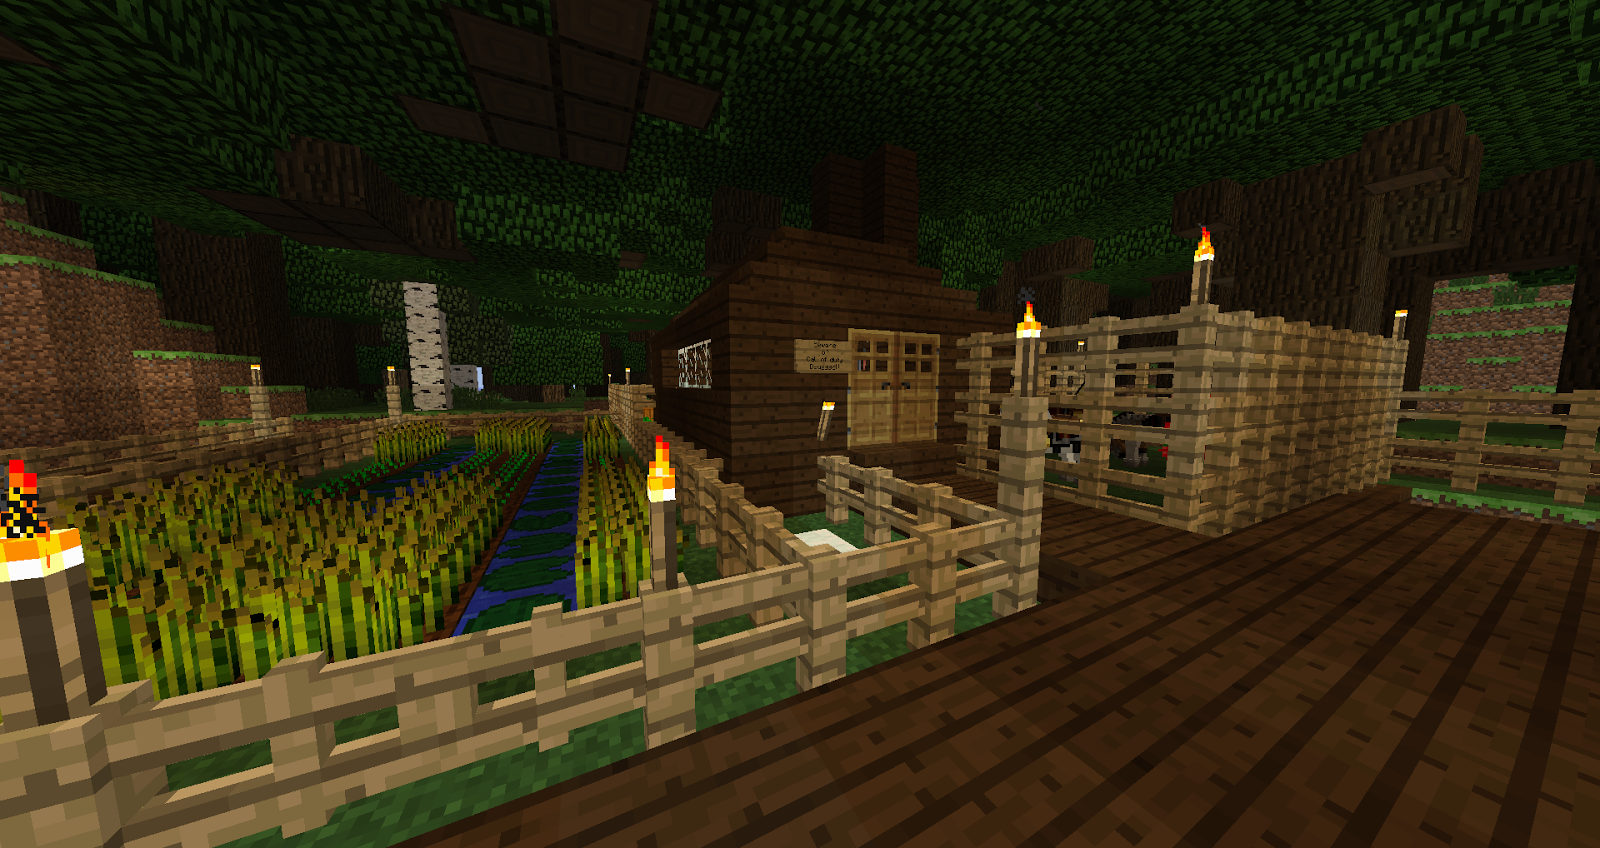 Minecraft Architect Secret Base In A Roofed Forest